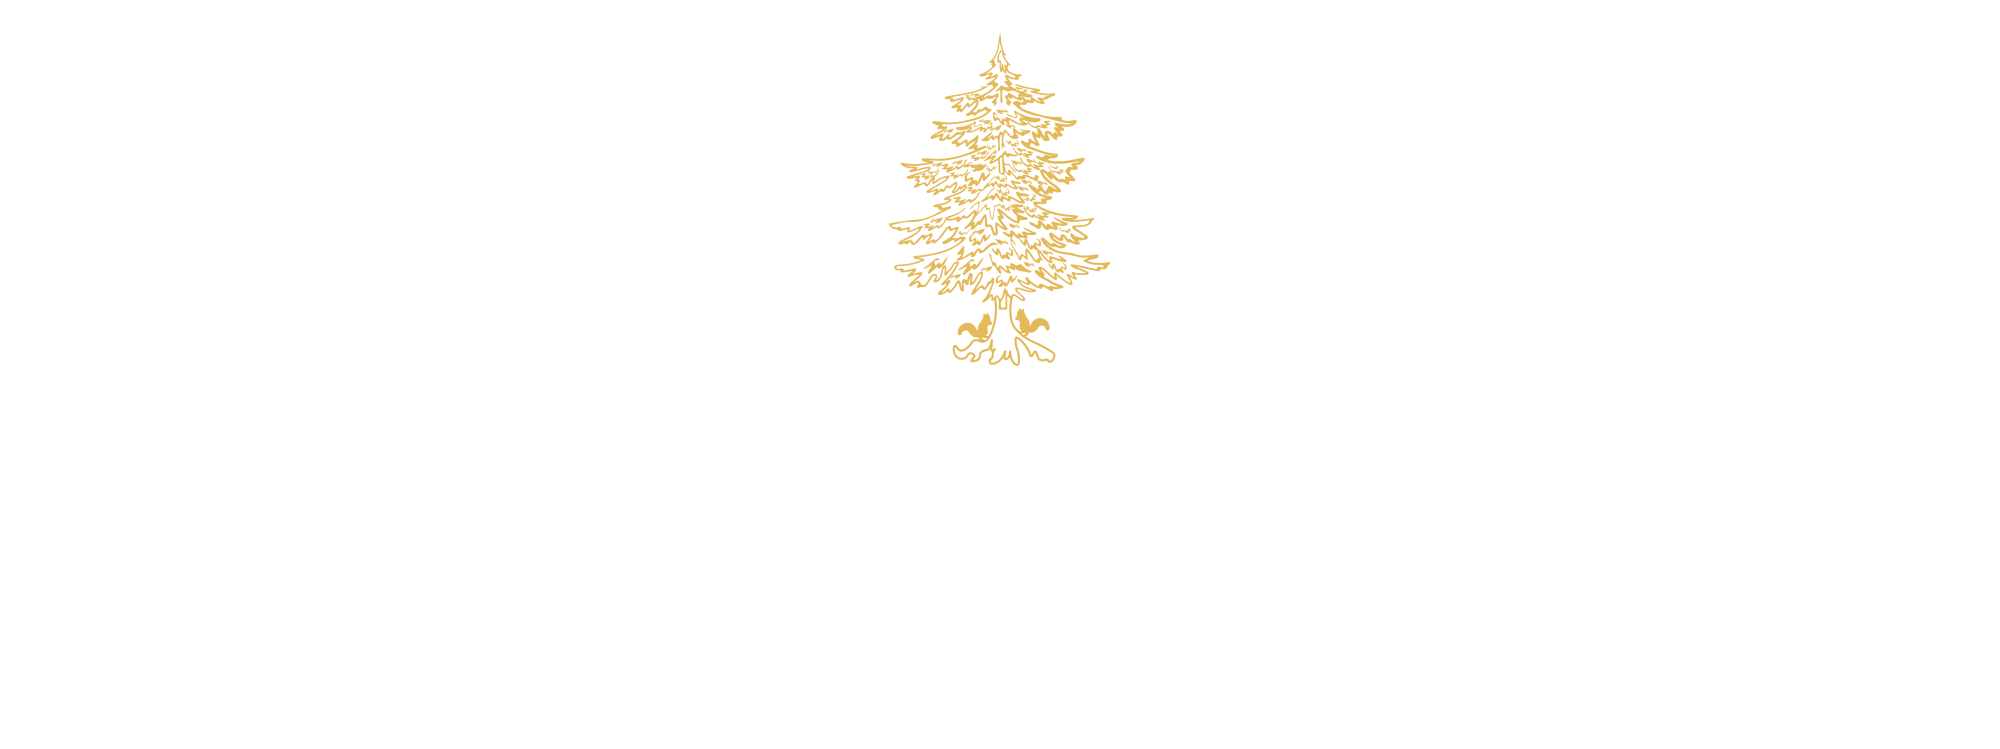 Valley Rock Inn